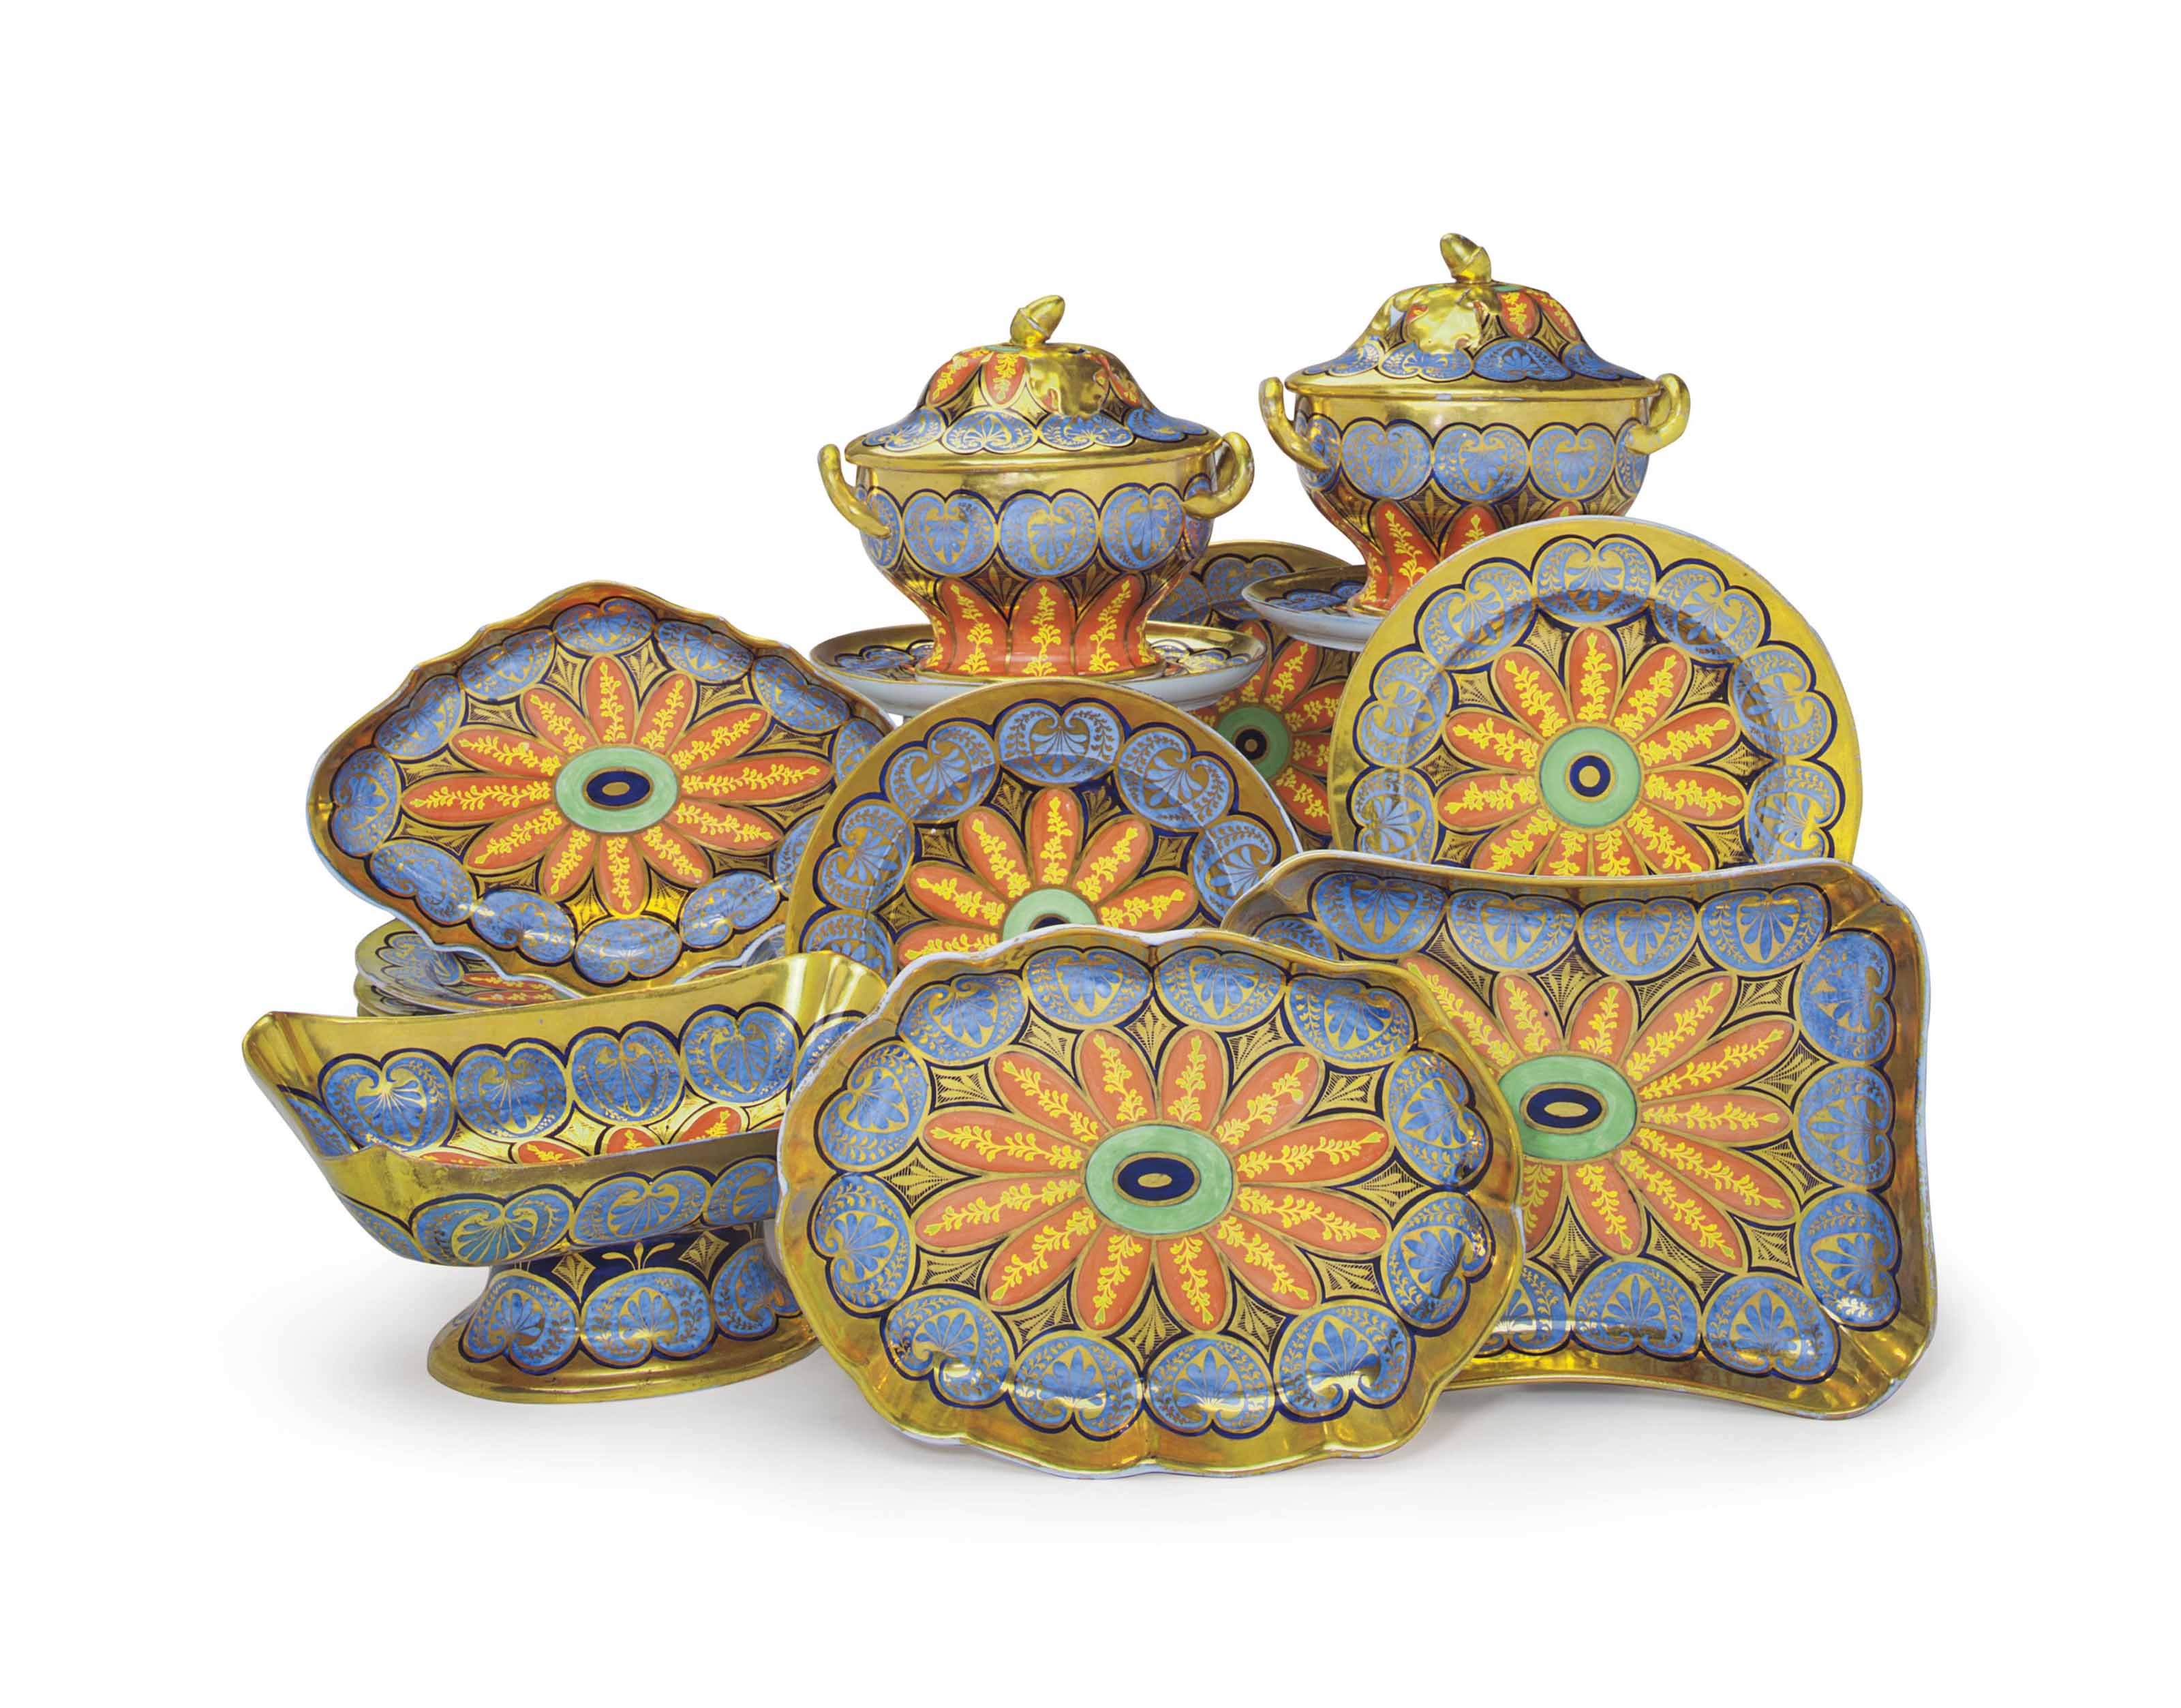 AN ENGLISH PORCELAIN BLUE AND ORANGE GROUND PART DESSERT SERVICE